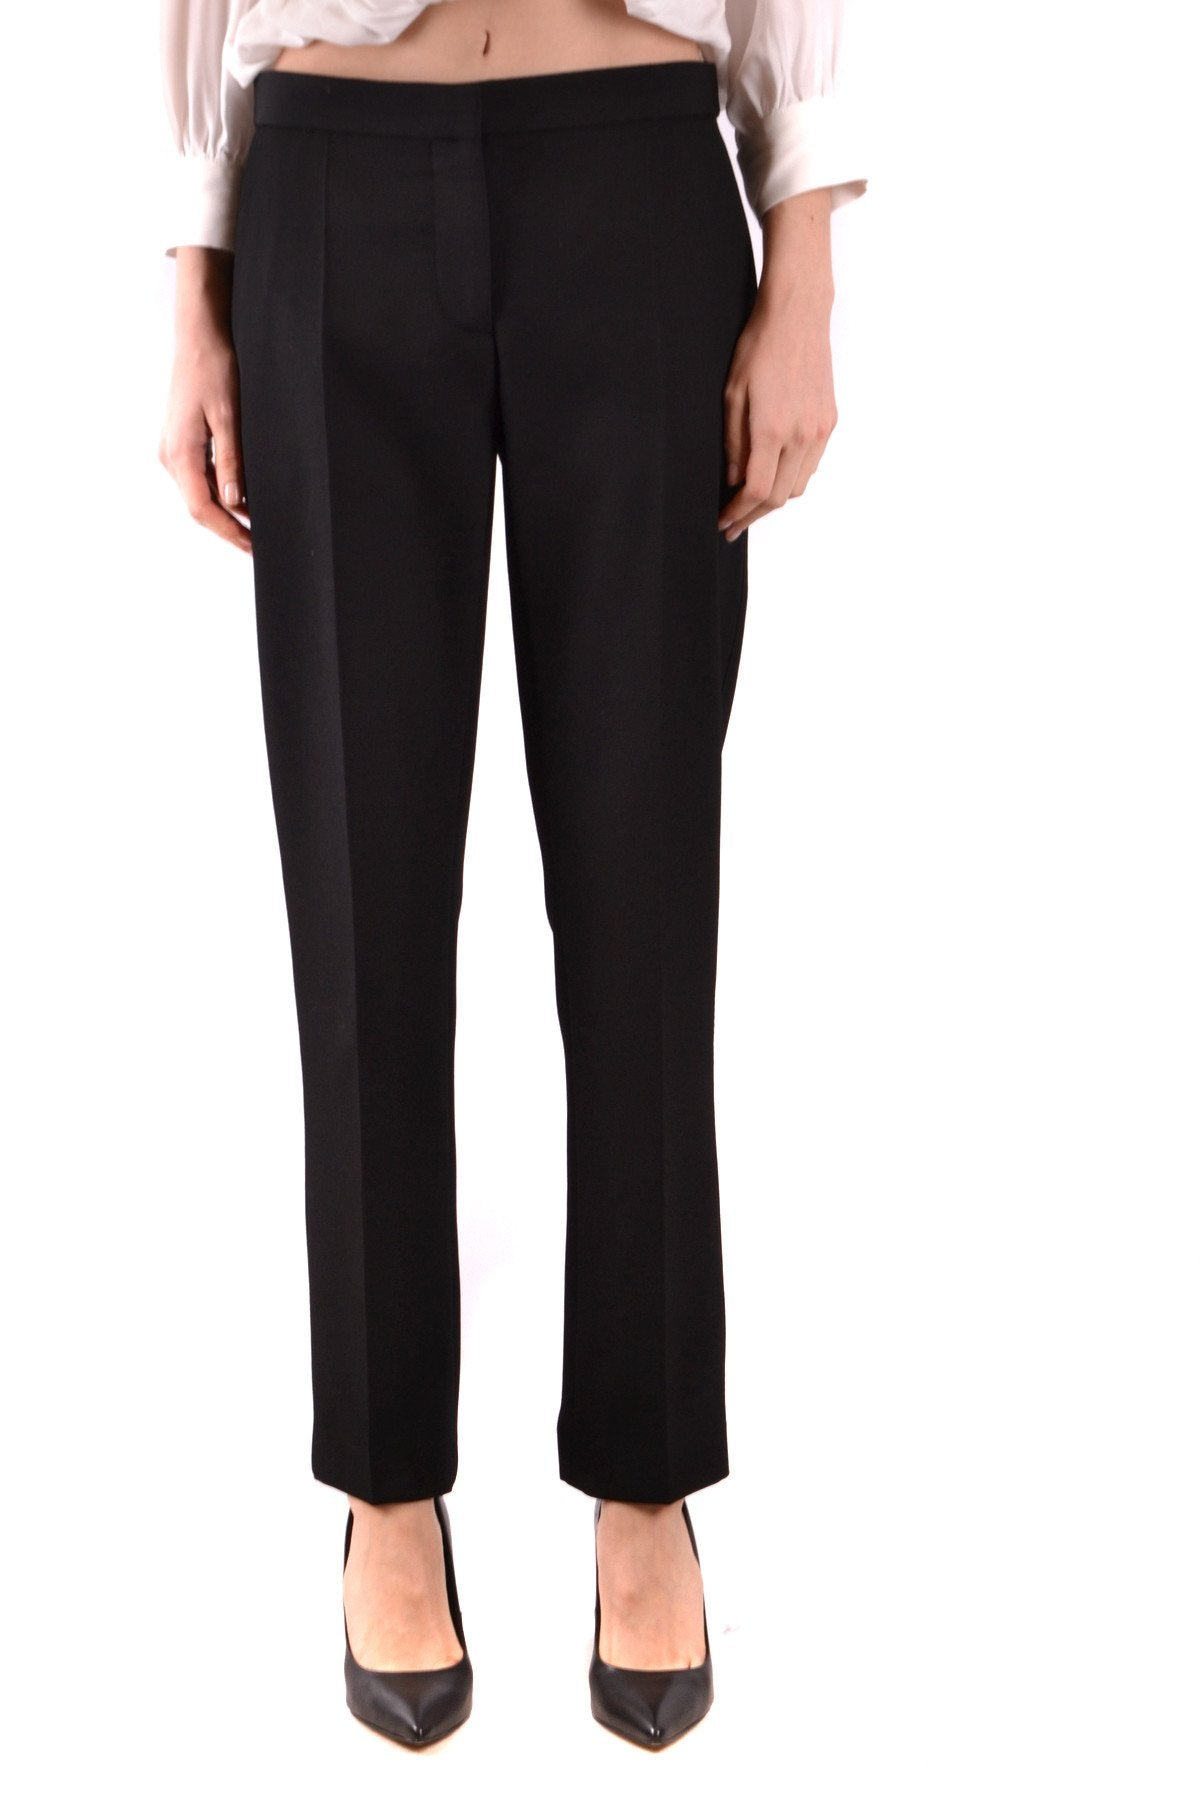 Burberry Woman Trousers